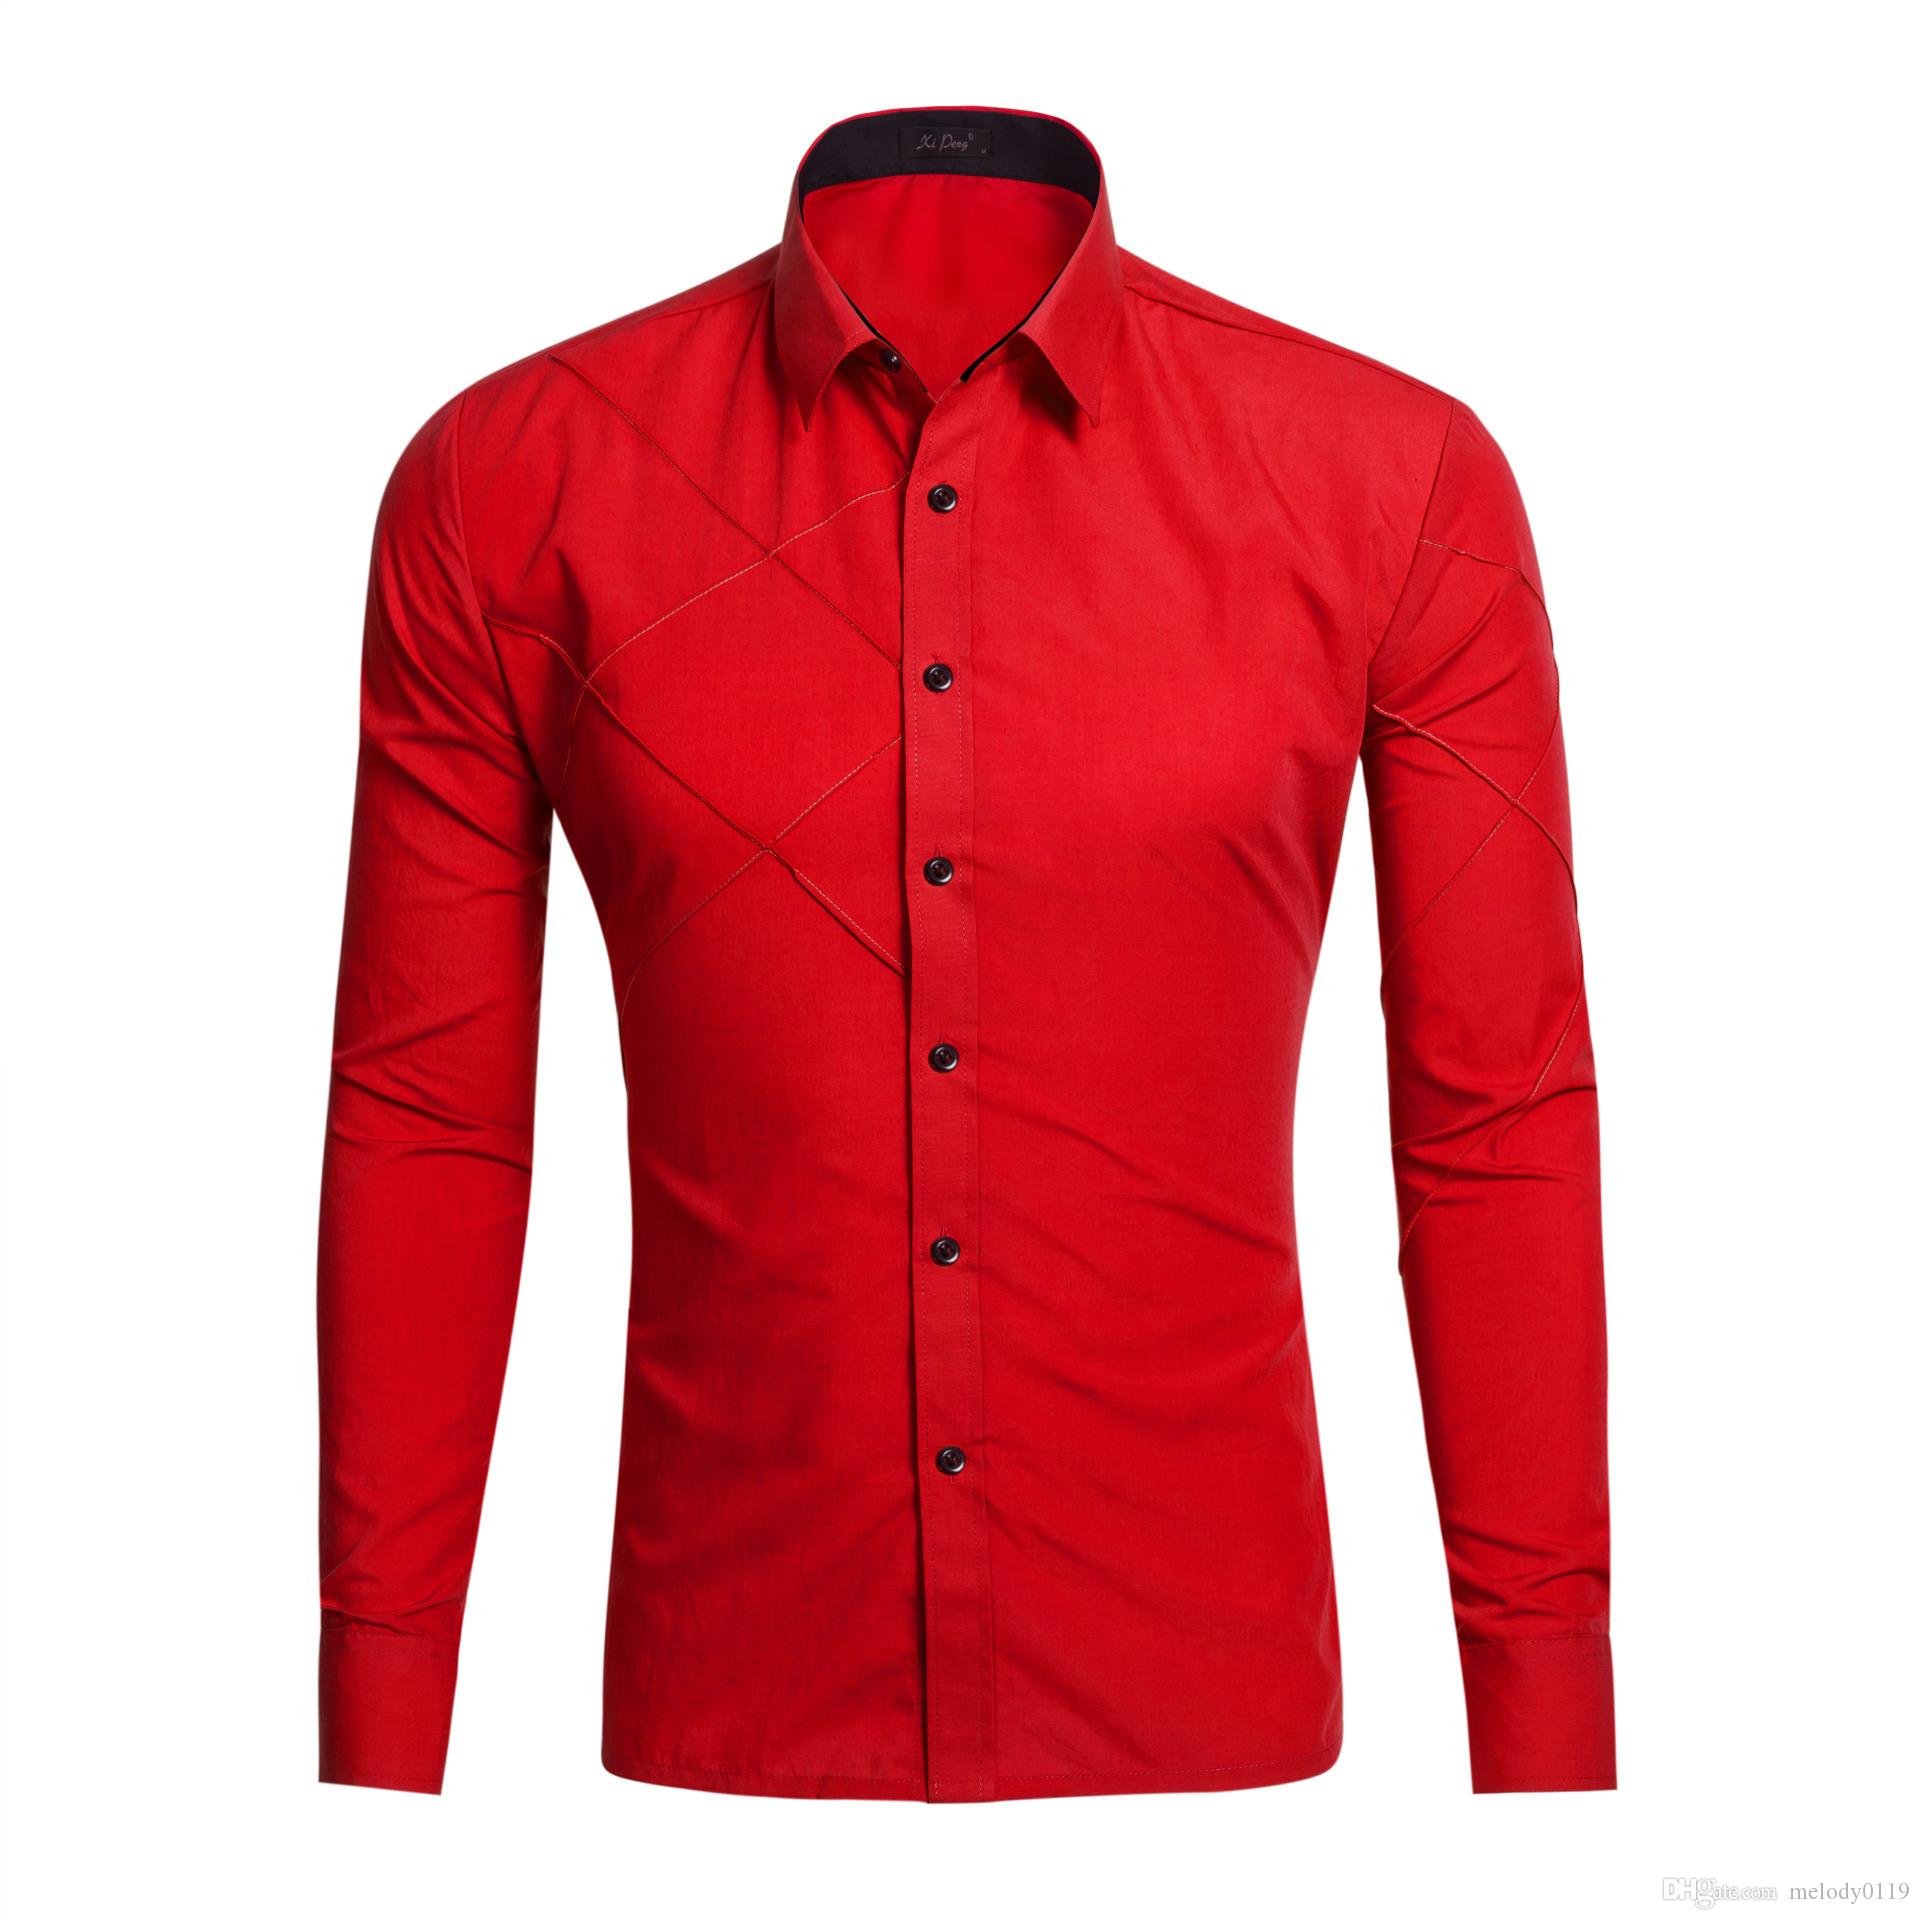 Men /& Women/'s Designer Italian Shirt Slim Fit Long Sleeves Casual Shirts